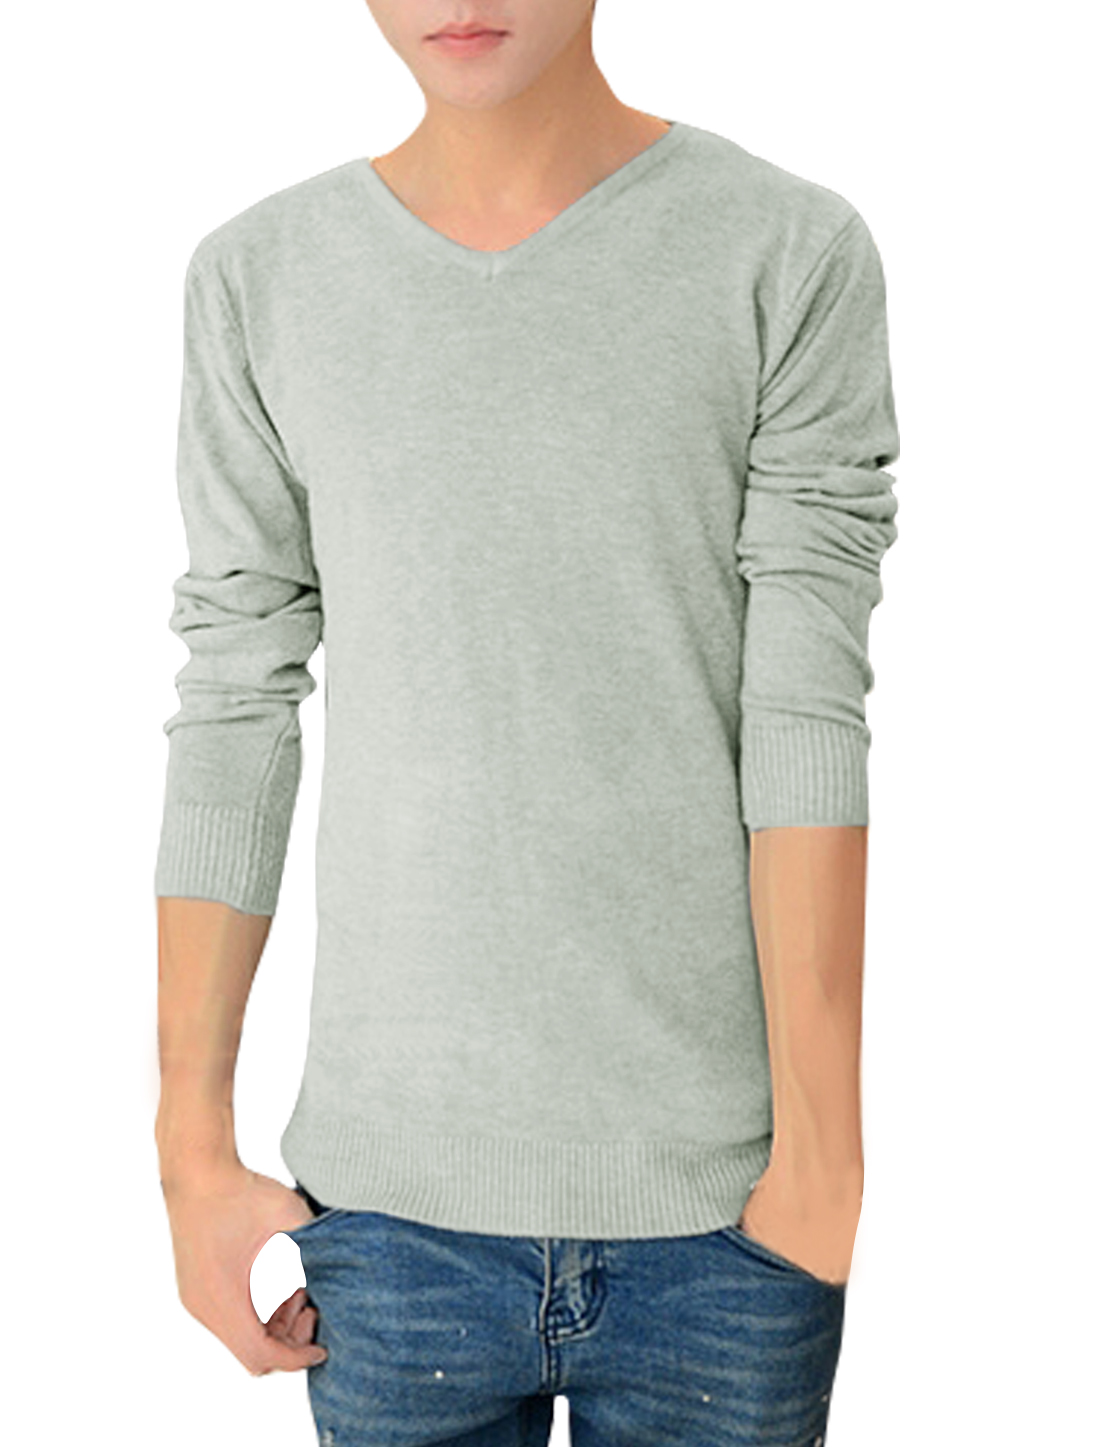 Men V Neck Long Sleeves Ribbed Trim Leisure Knit Shirt Gray M